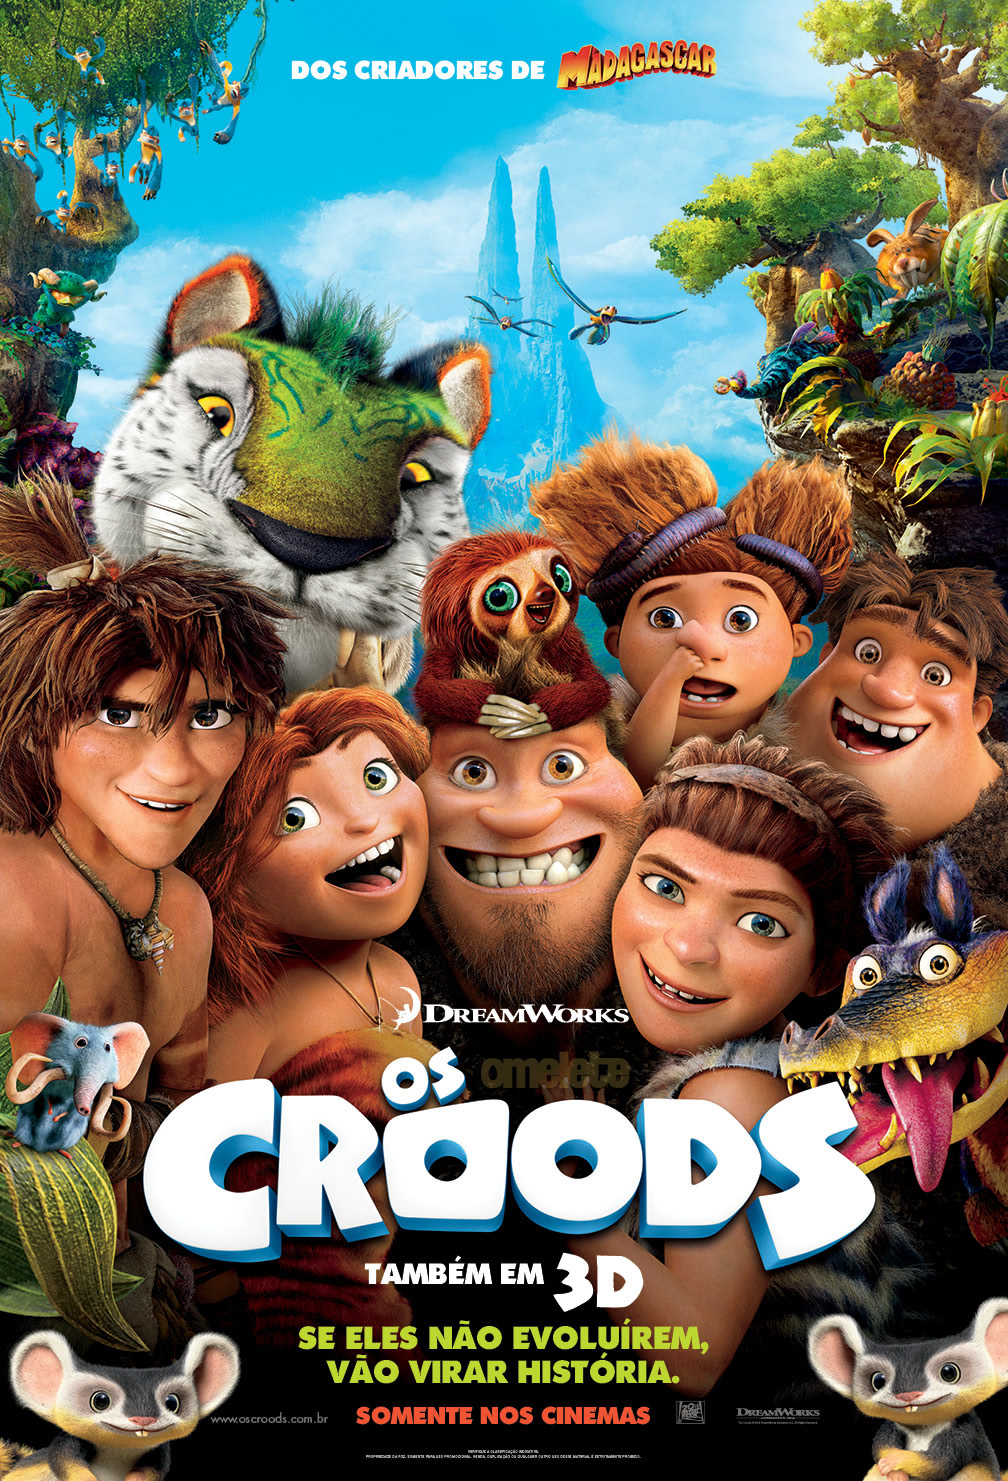 Os Croods (The Croods) (2013) DVDRip Dual Áudio e DVD R   Torrent